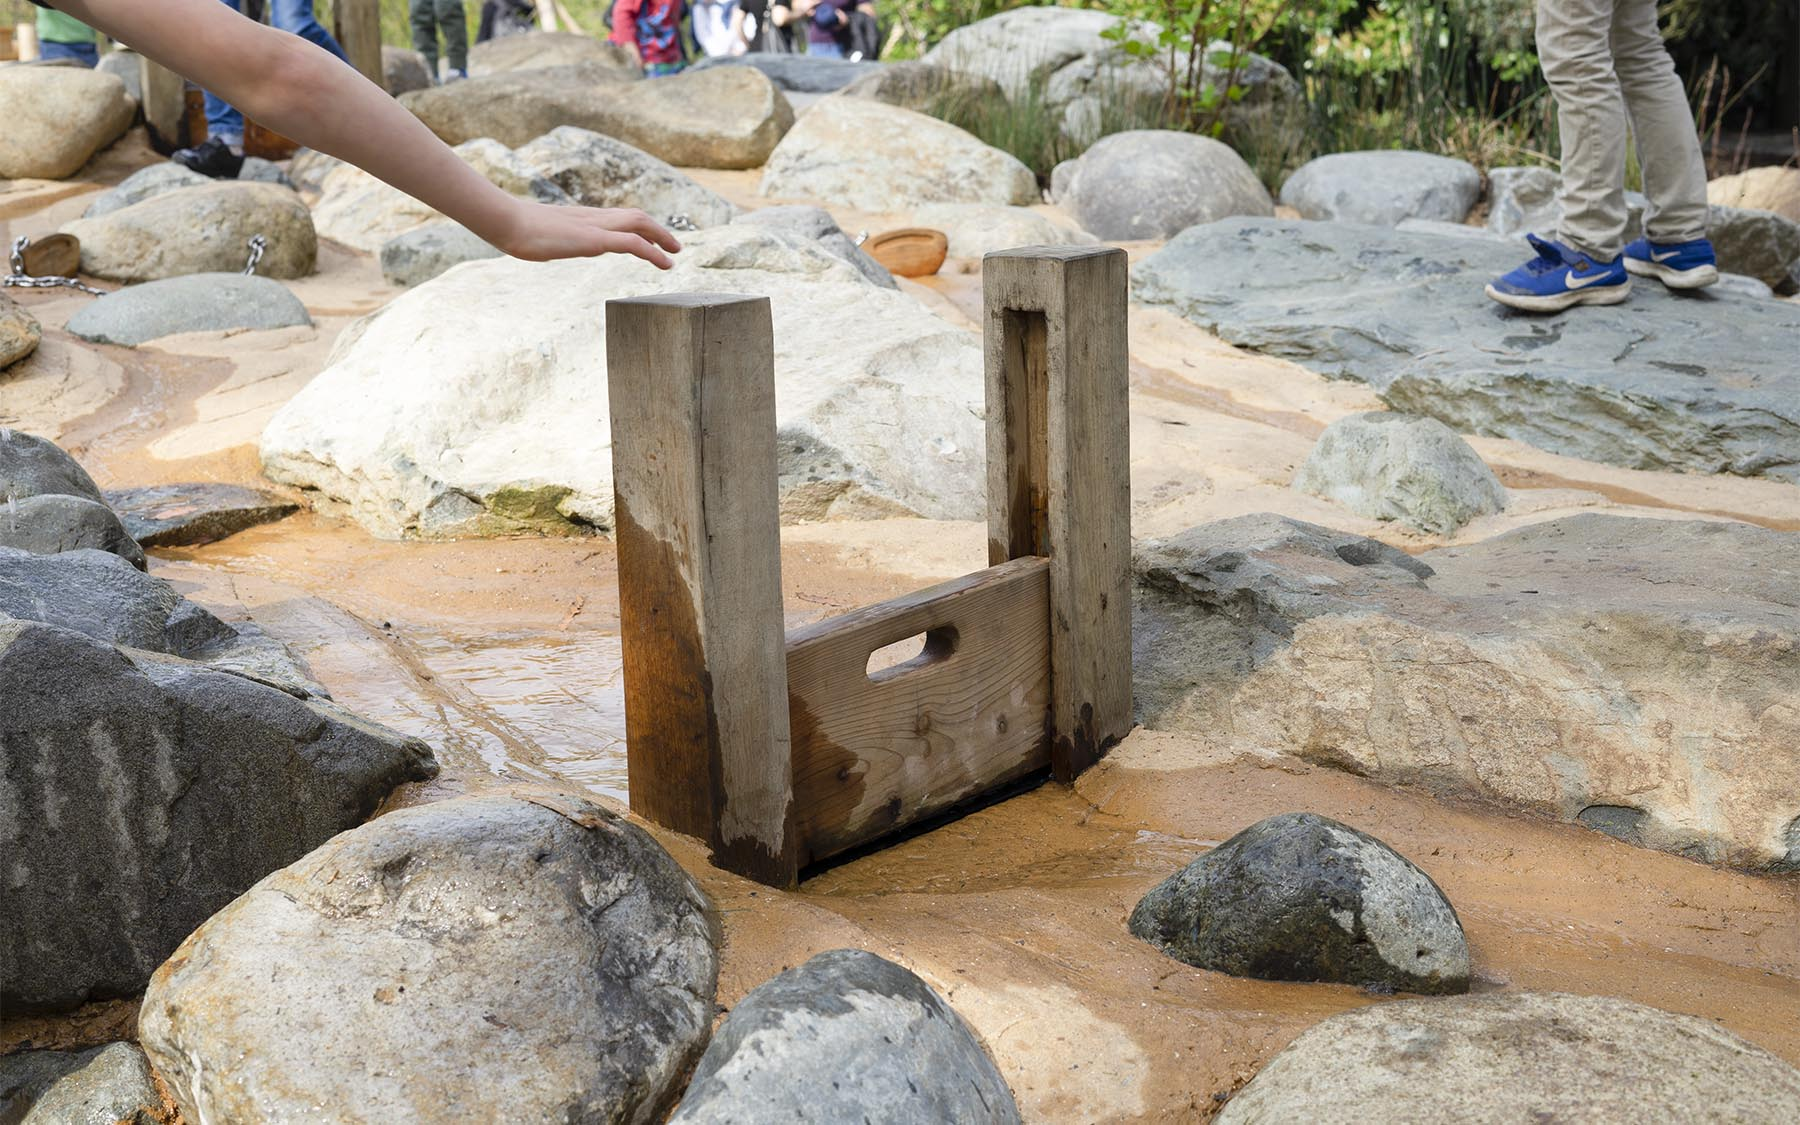 sand and water play equipment sluice gate